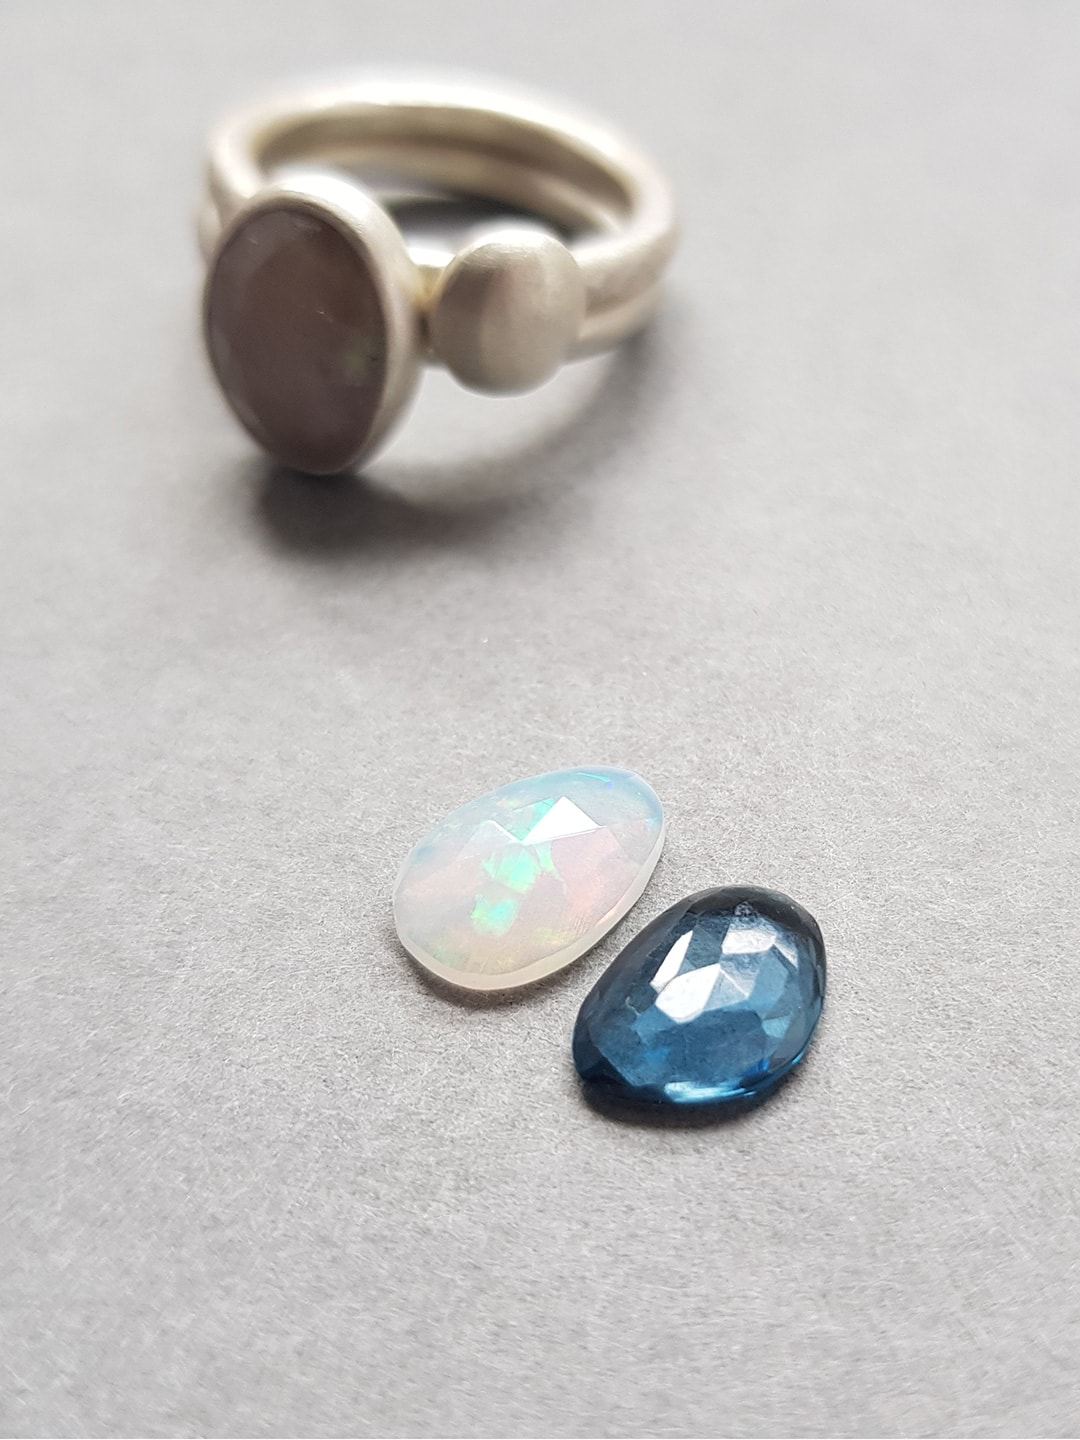 White opal and blue topaz rings